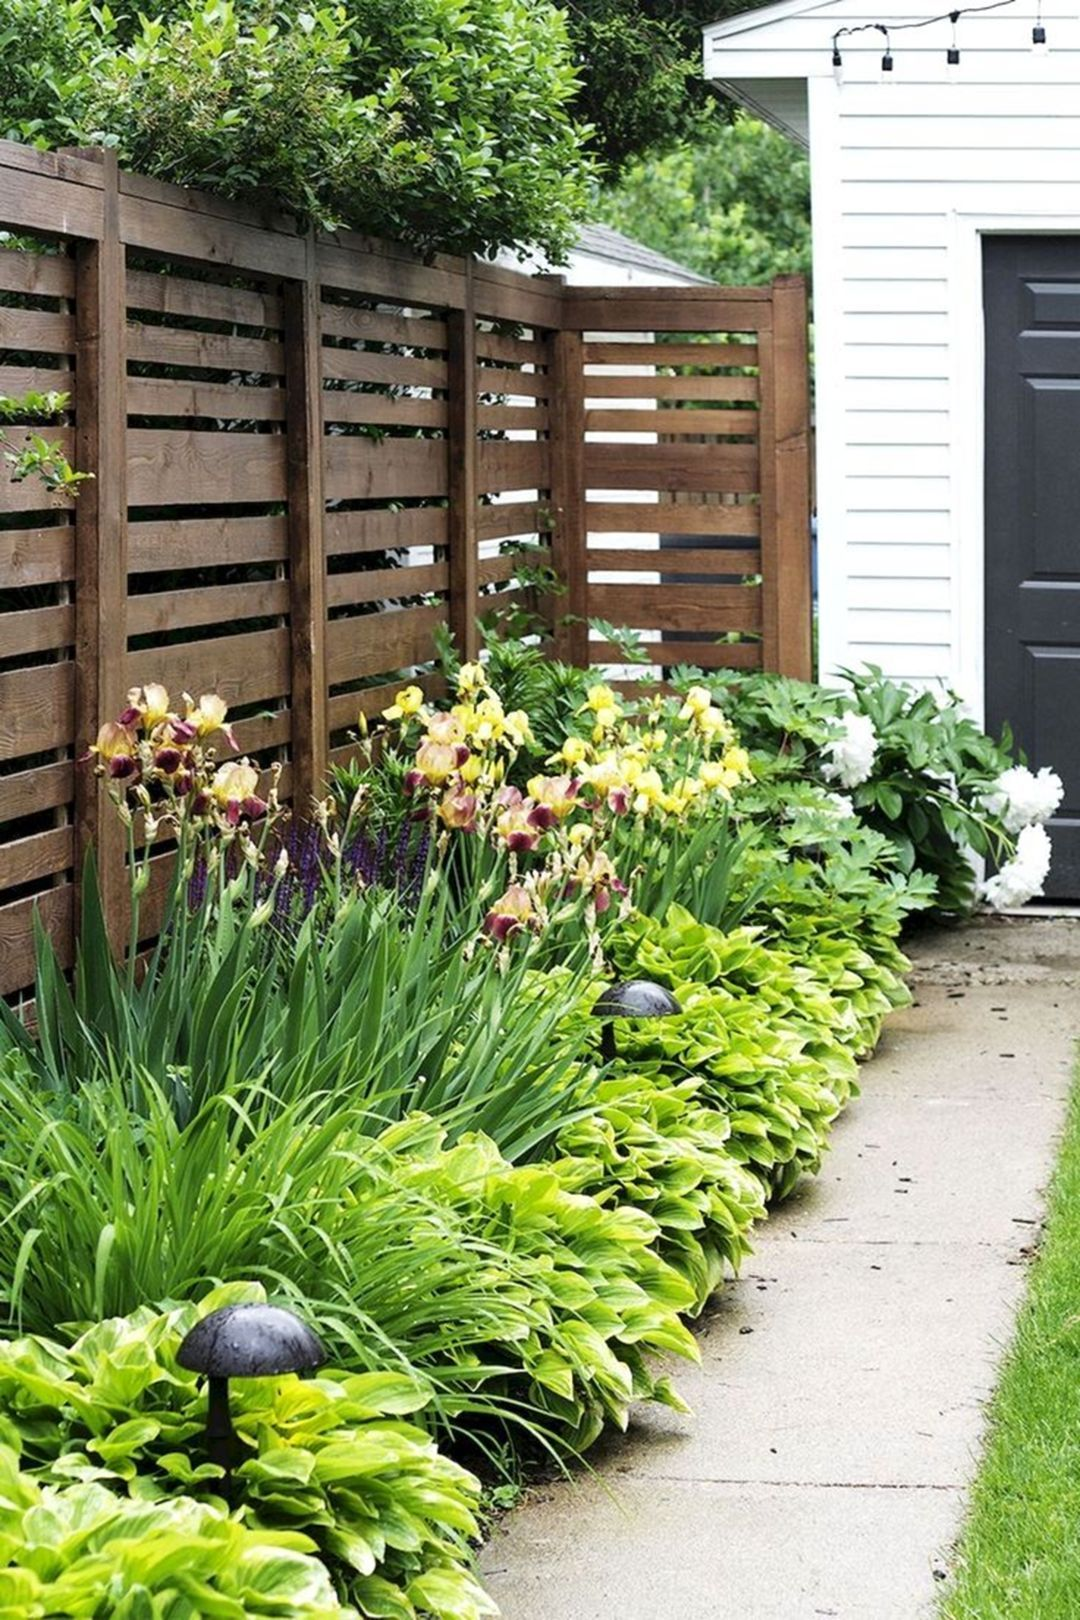 fence.-4 100+ Surprising Garden Design Ideas You Should Not Miss in 2021